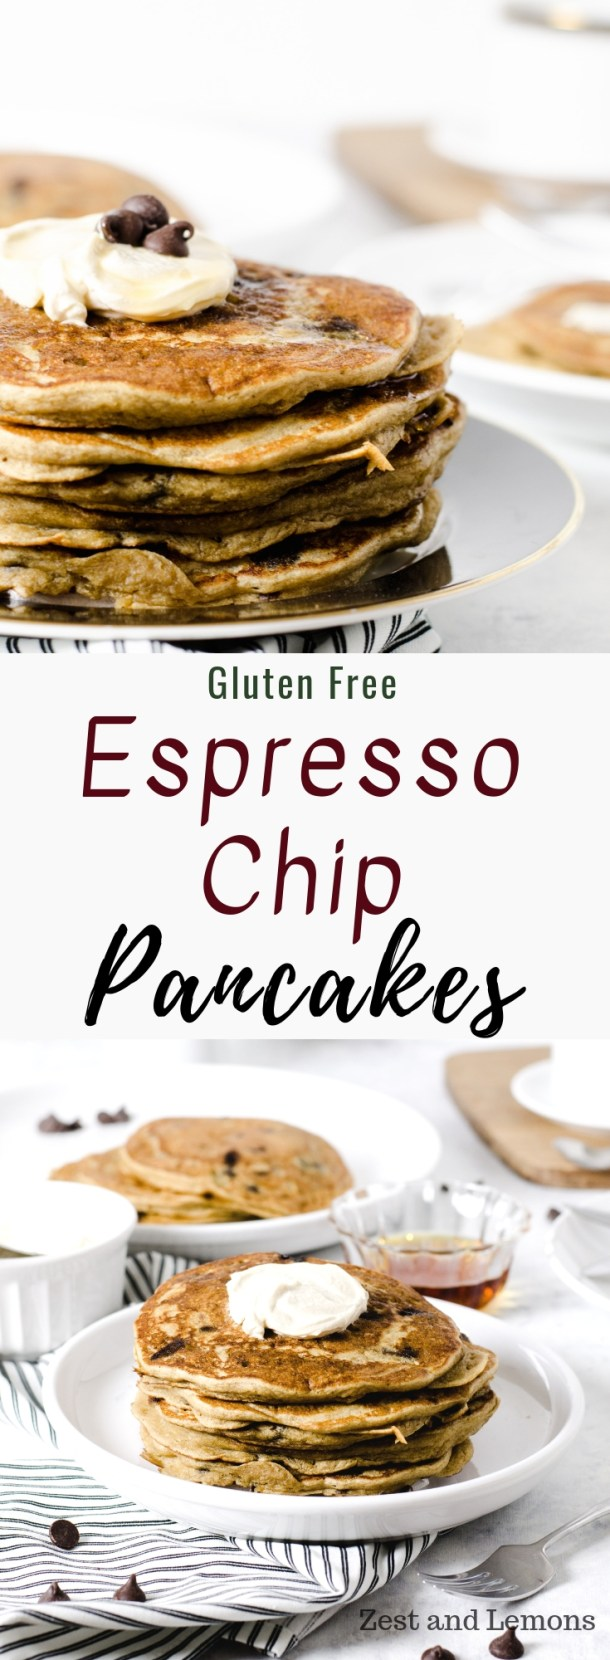 Espresso chip gluten free pancakes. Fluffy gluten free pancakes with a light espresso flavor and loaded with chocolate chips, topped with an espresso mascarpone topping - Zest and Lemons #glutenfreepancakes #pancakes #glutenfreebreakfast